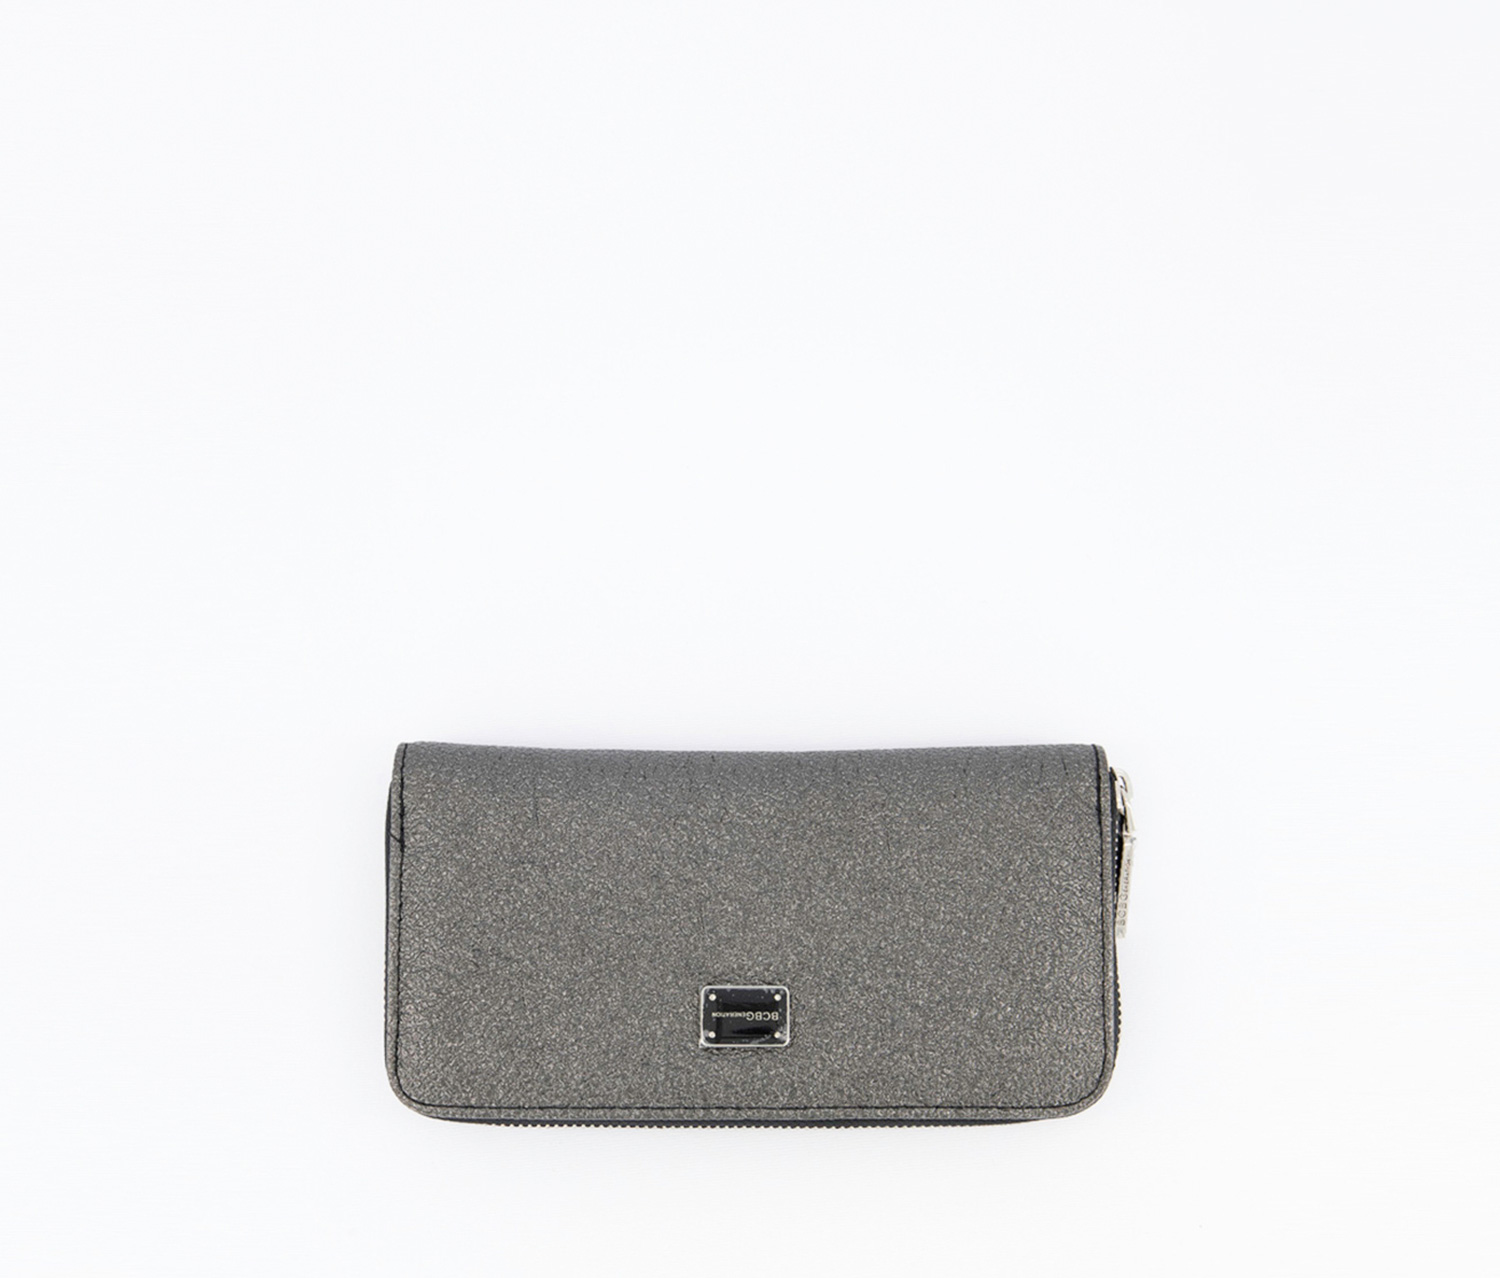 Allison Metallic Zip Around Wallet, Metallic Black